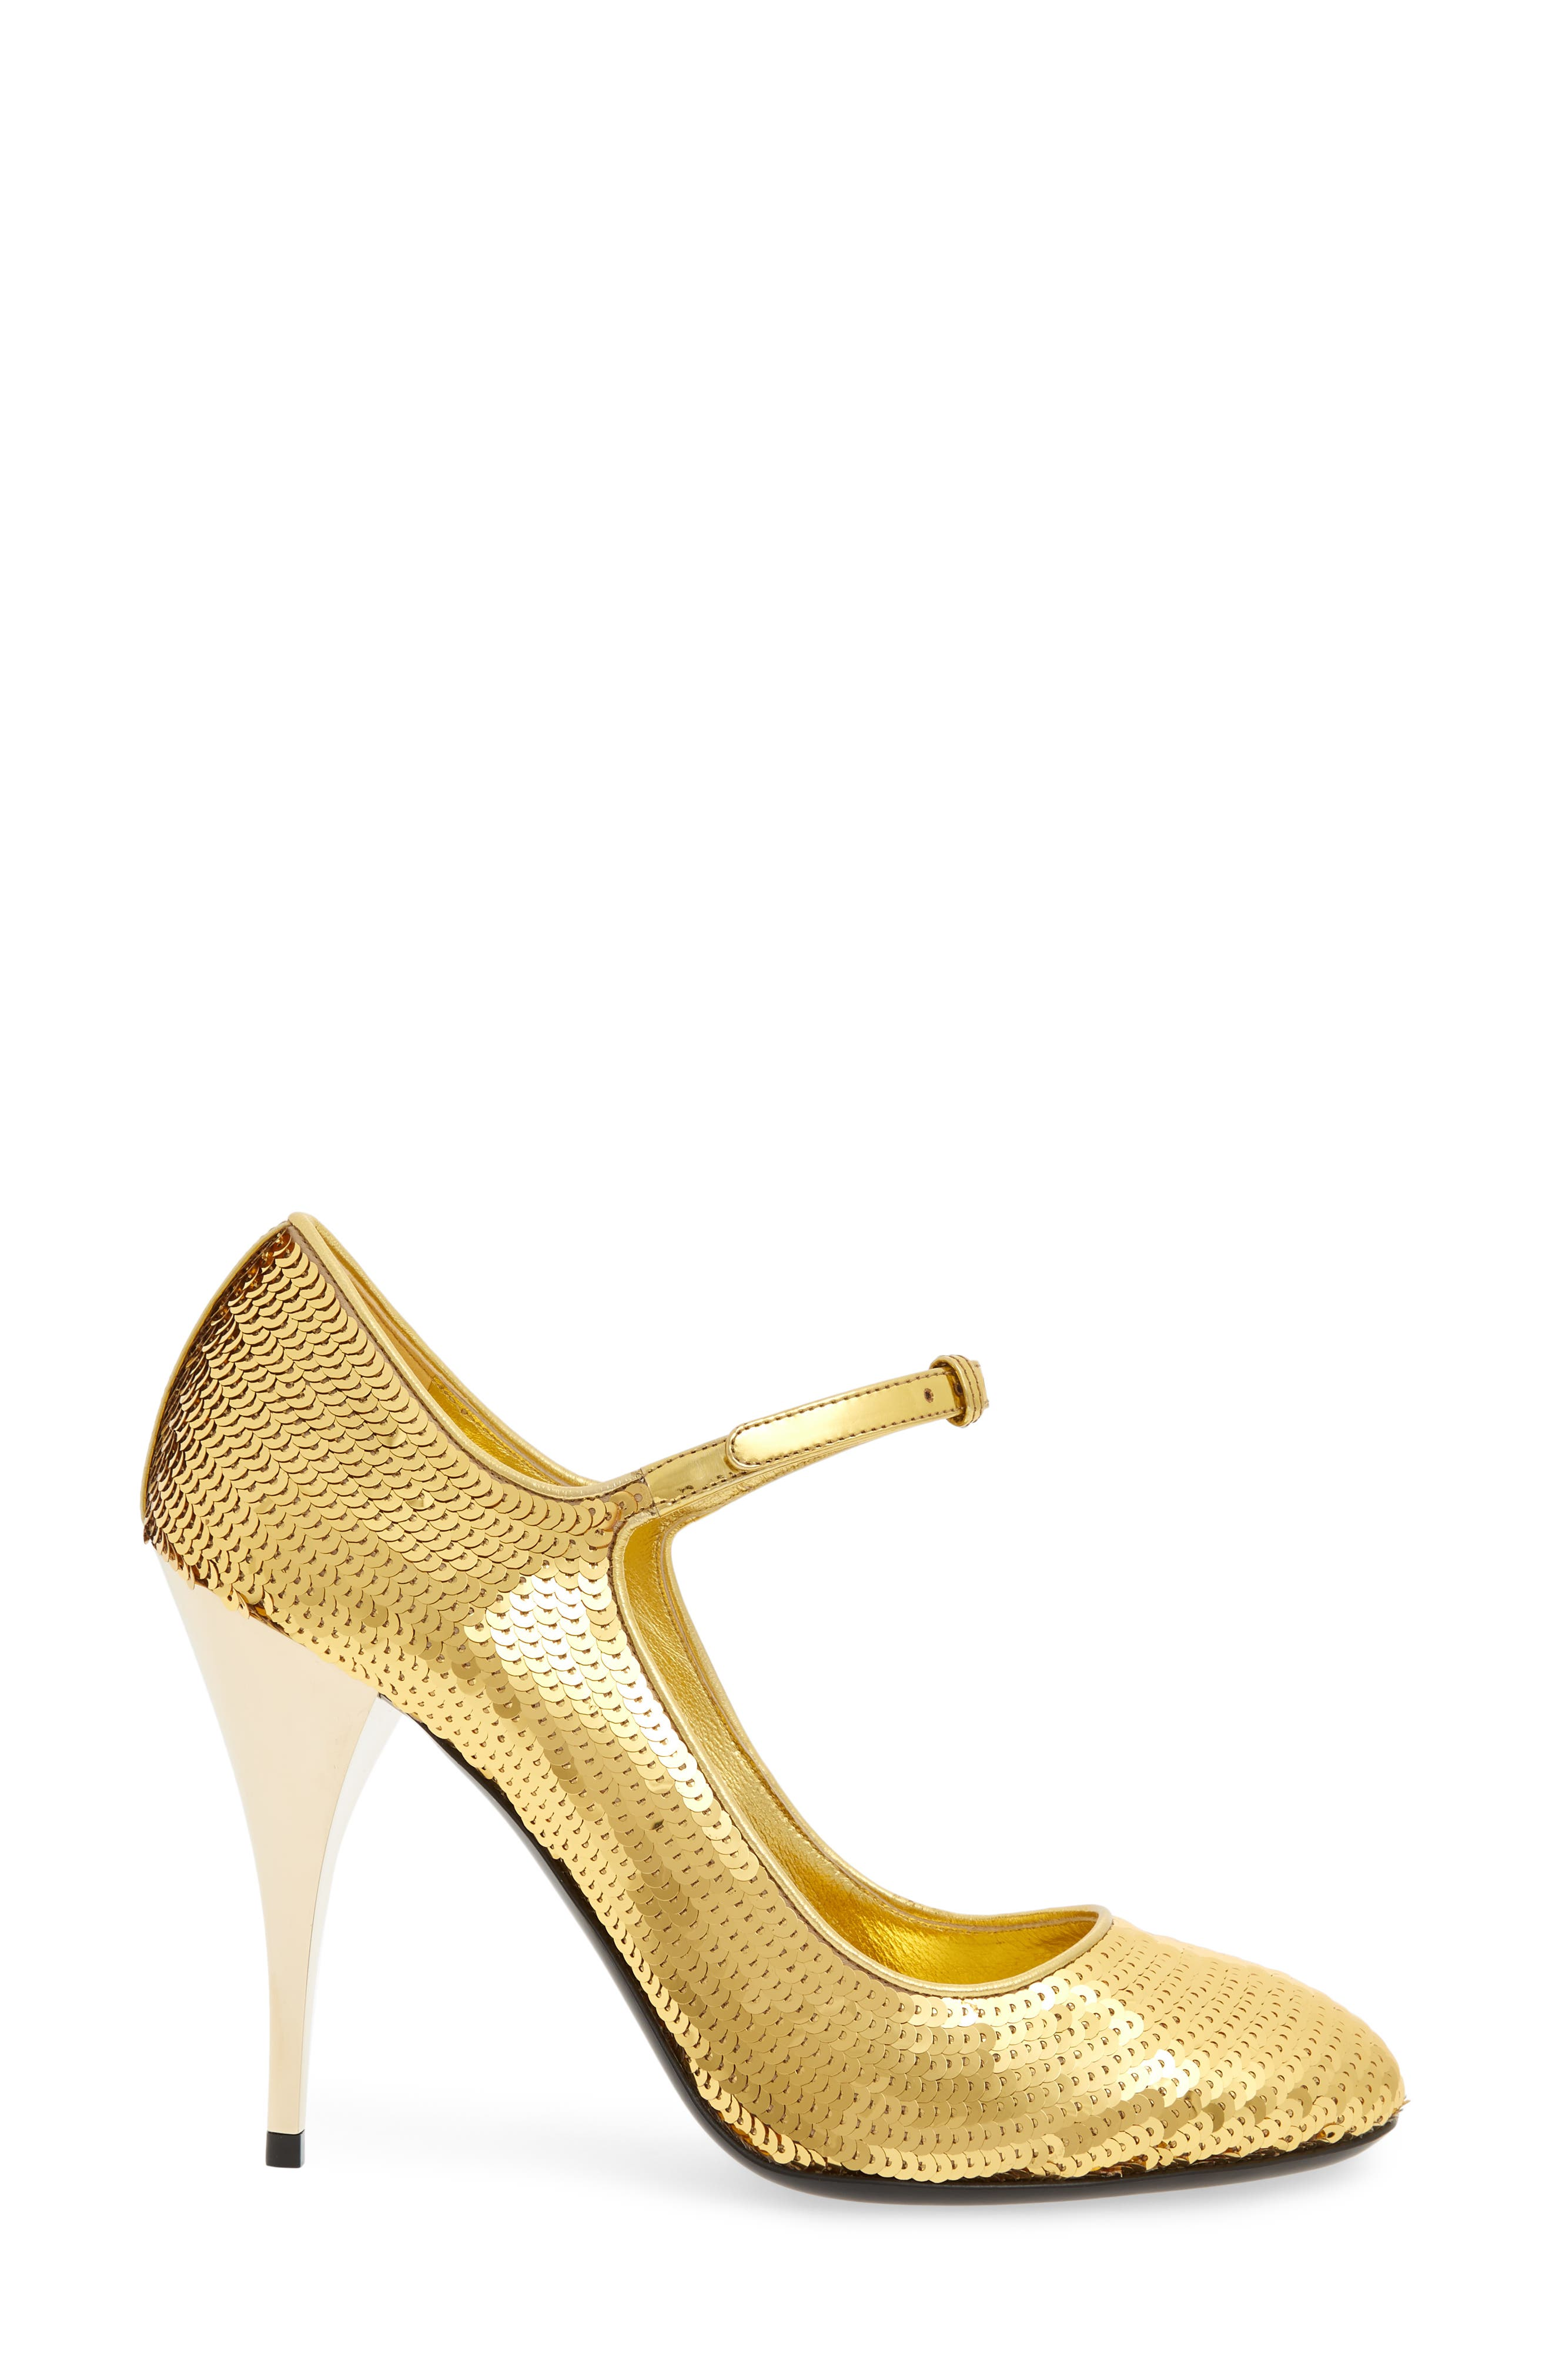 Sequin Mary Jane Pump,                             Alternate thumbnail 3, color,                             GOLD